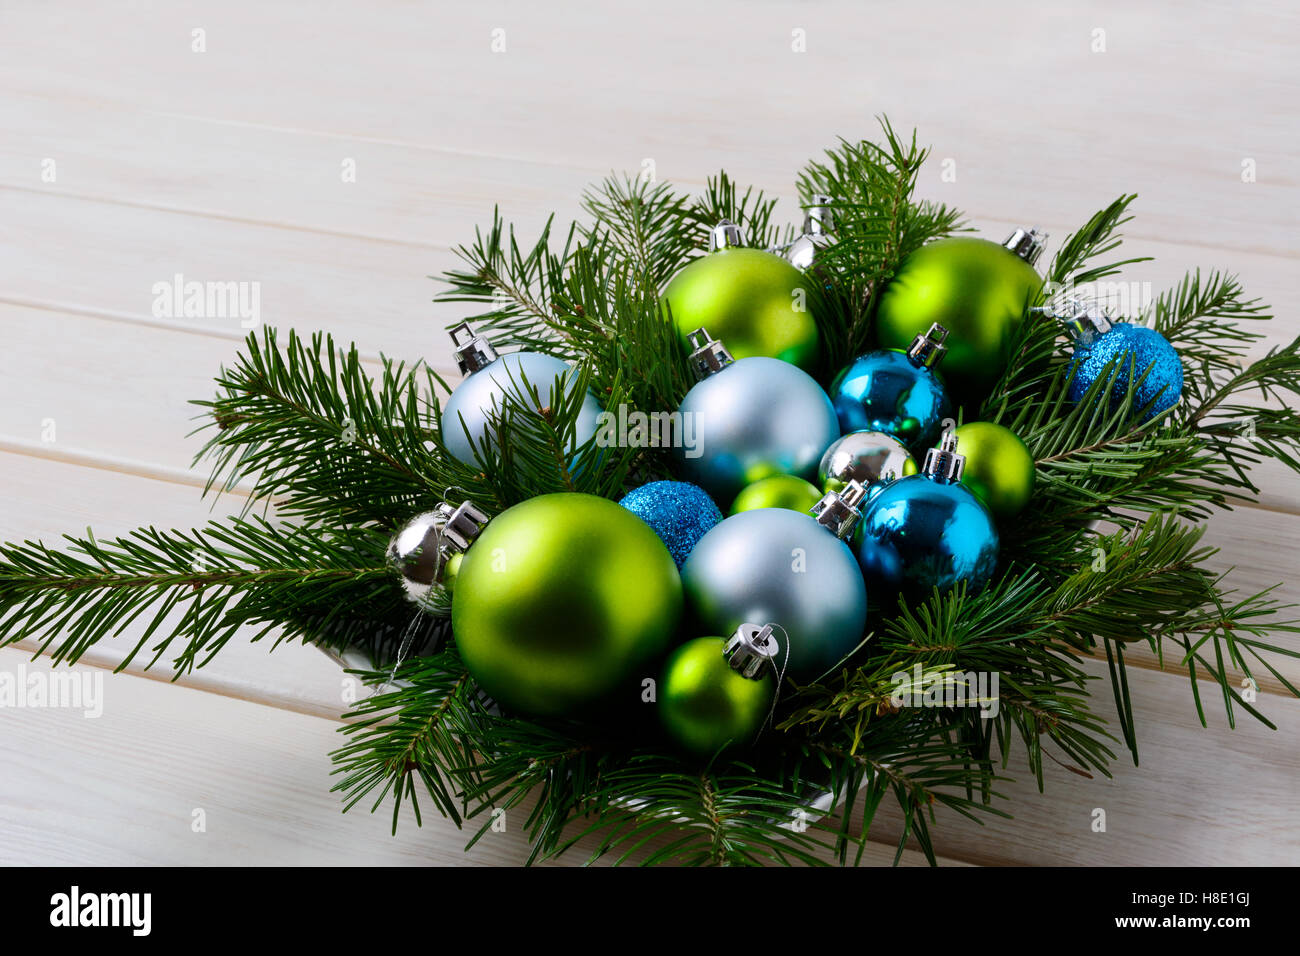 Christmas Table Centerpiece With Silver Blue And Green Ornaments